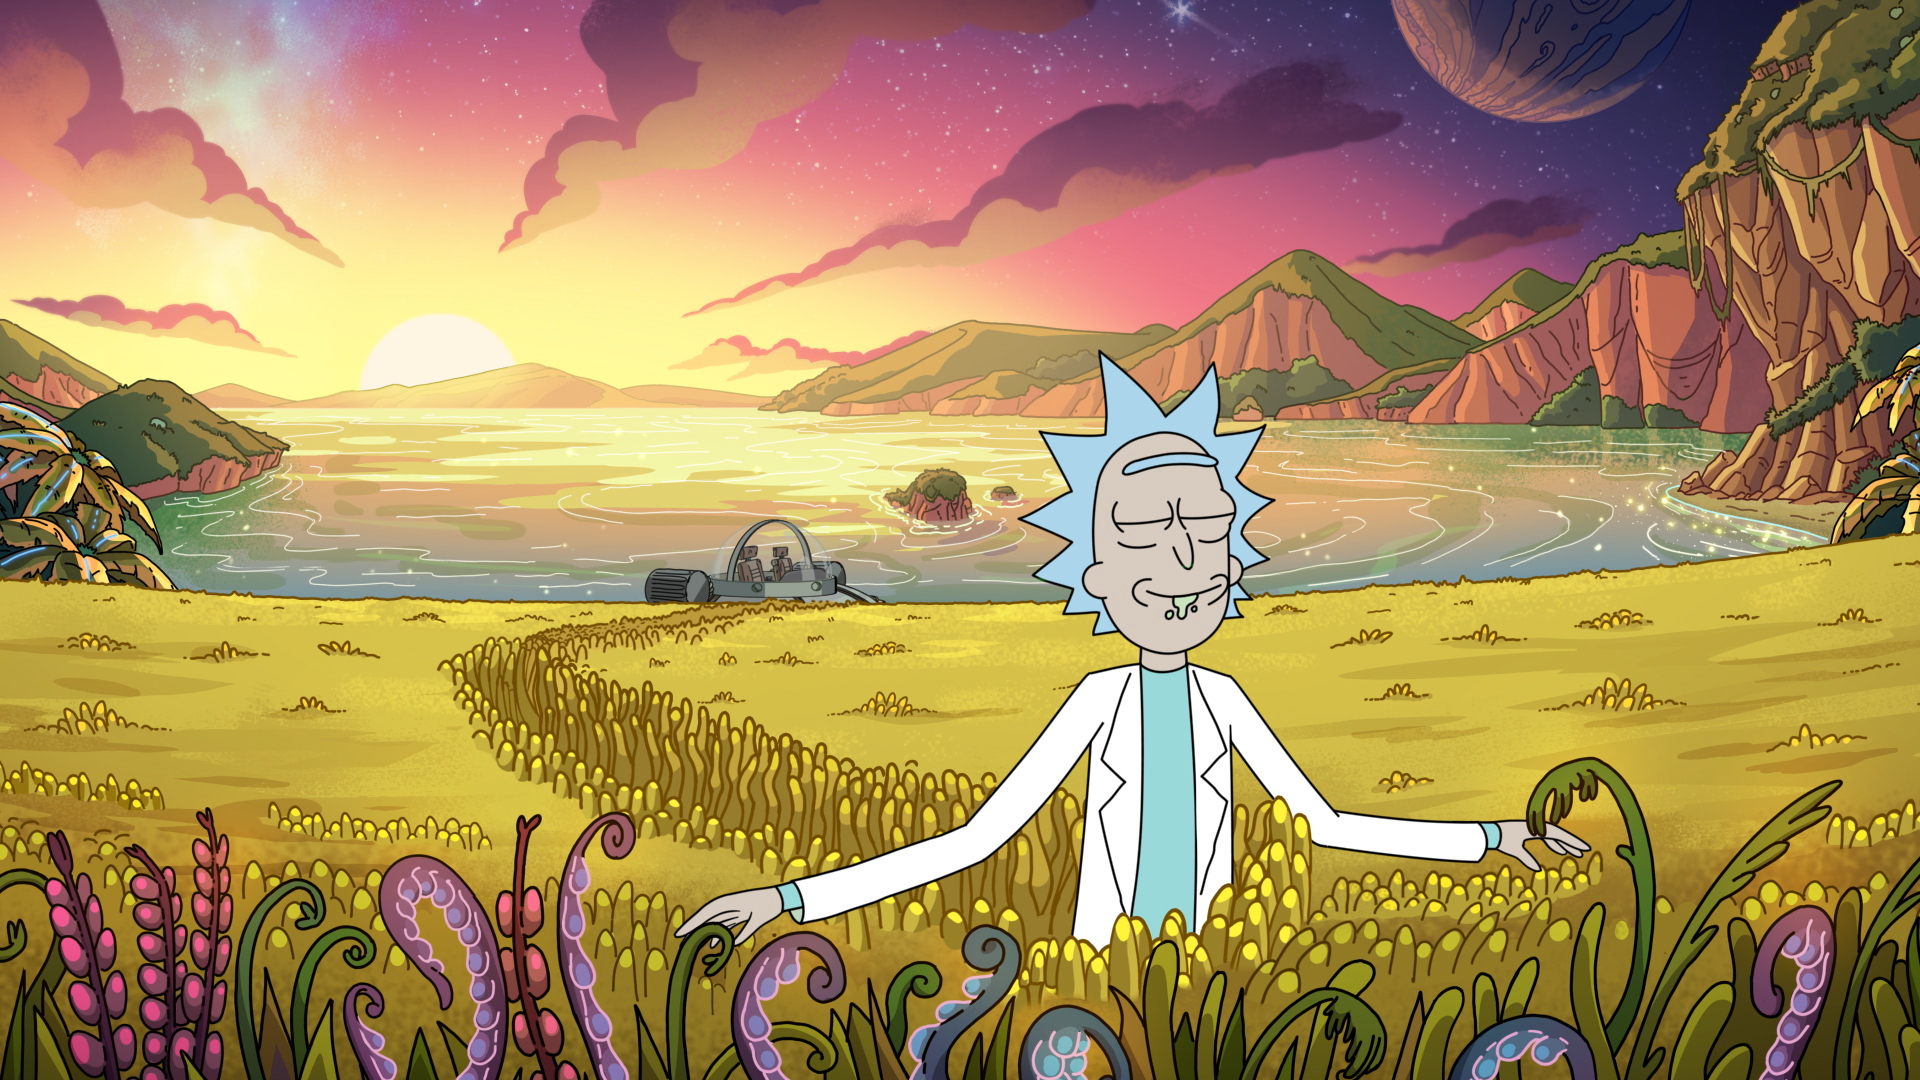 a scene from 'Rick and Morty' Season 4